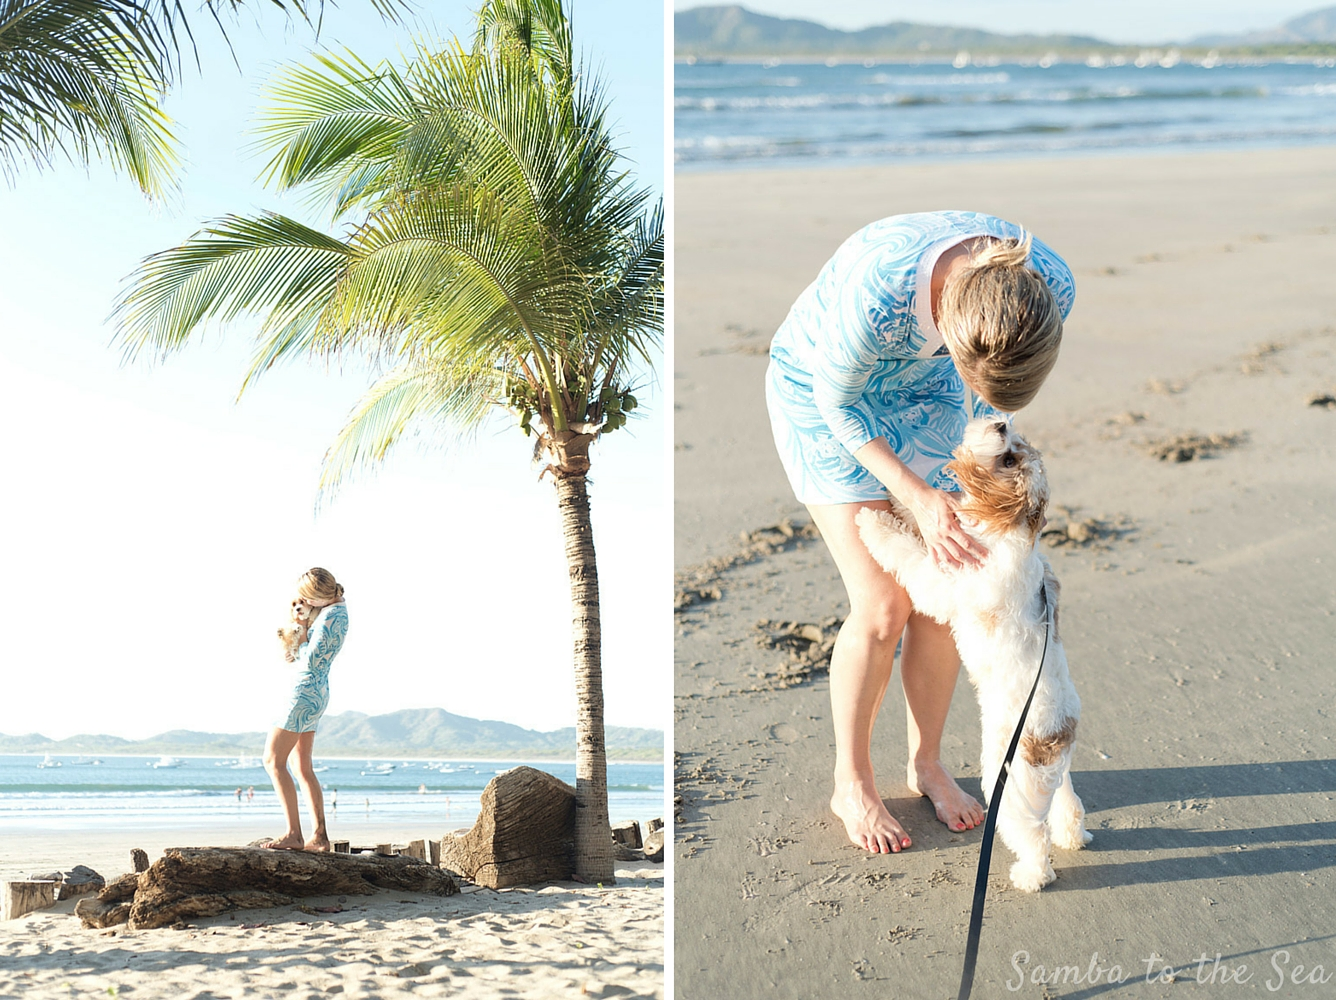 Waffles the Cavapoo and Theresa in Playa Tamarindo, Costa Rica. Theresa is wearing the Lilly Pulitzer Marlina Printed T-Shirt Dress. Photographed by Kristen M. Brown, Samba to the Sea Photography.